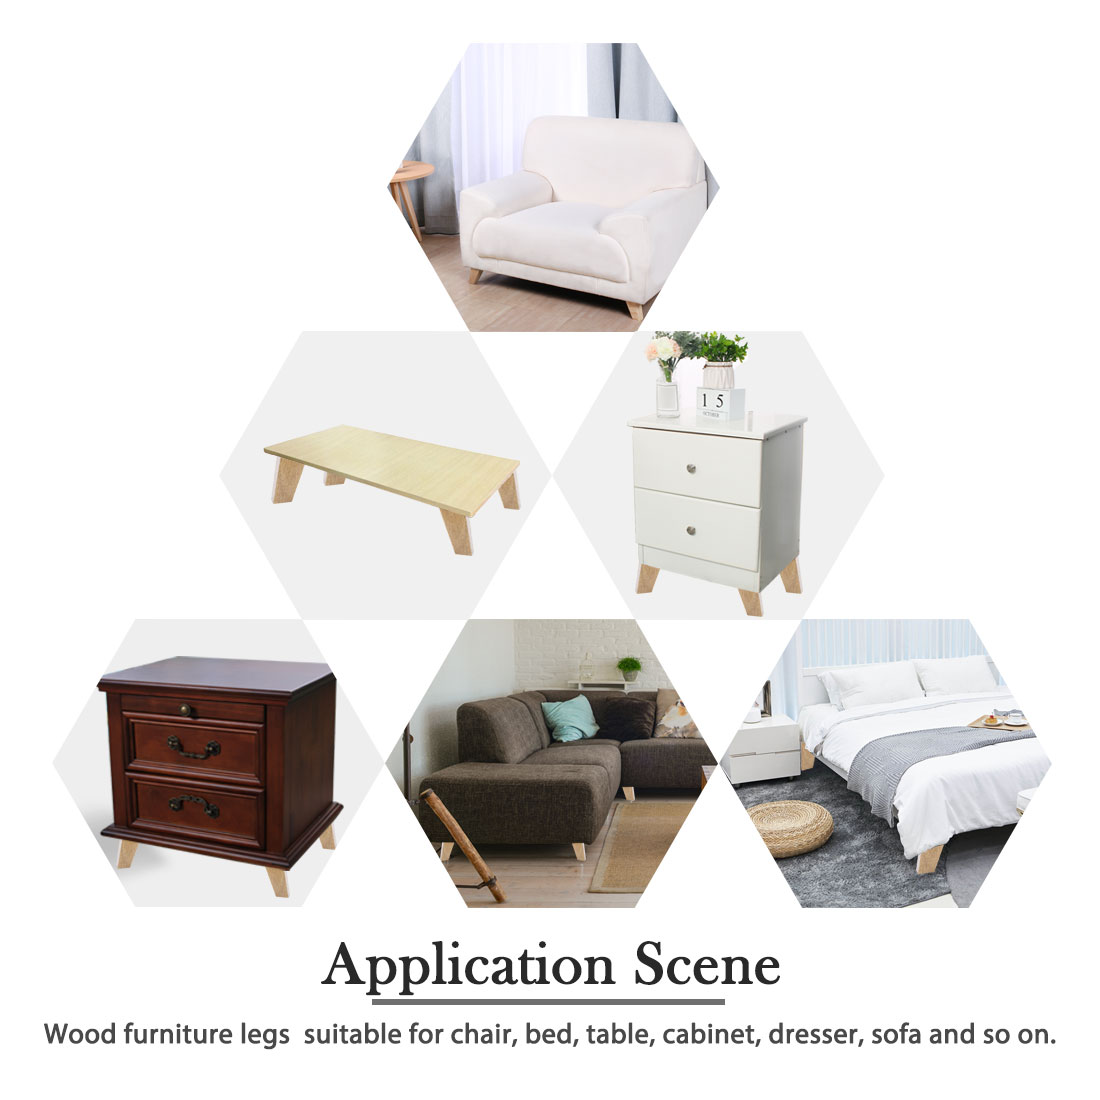 BEDS WARDROBES 4x WOODEN REPLACEMENT FEET FURNITURE LEGS FOR DRAWERS CABINETS